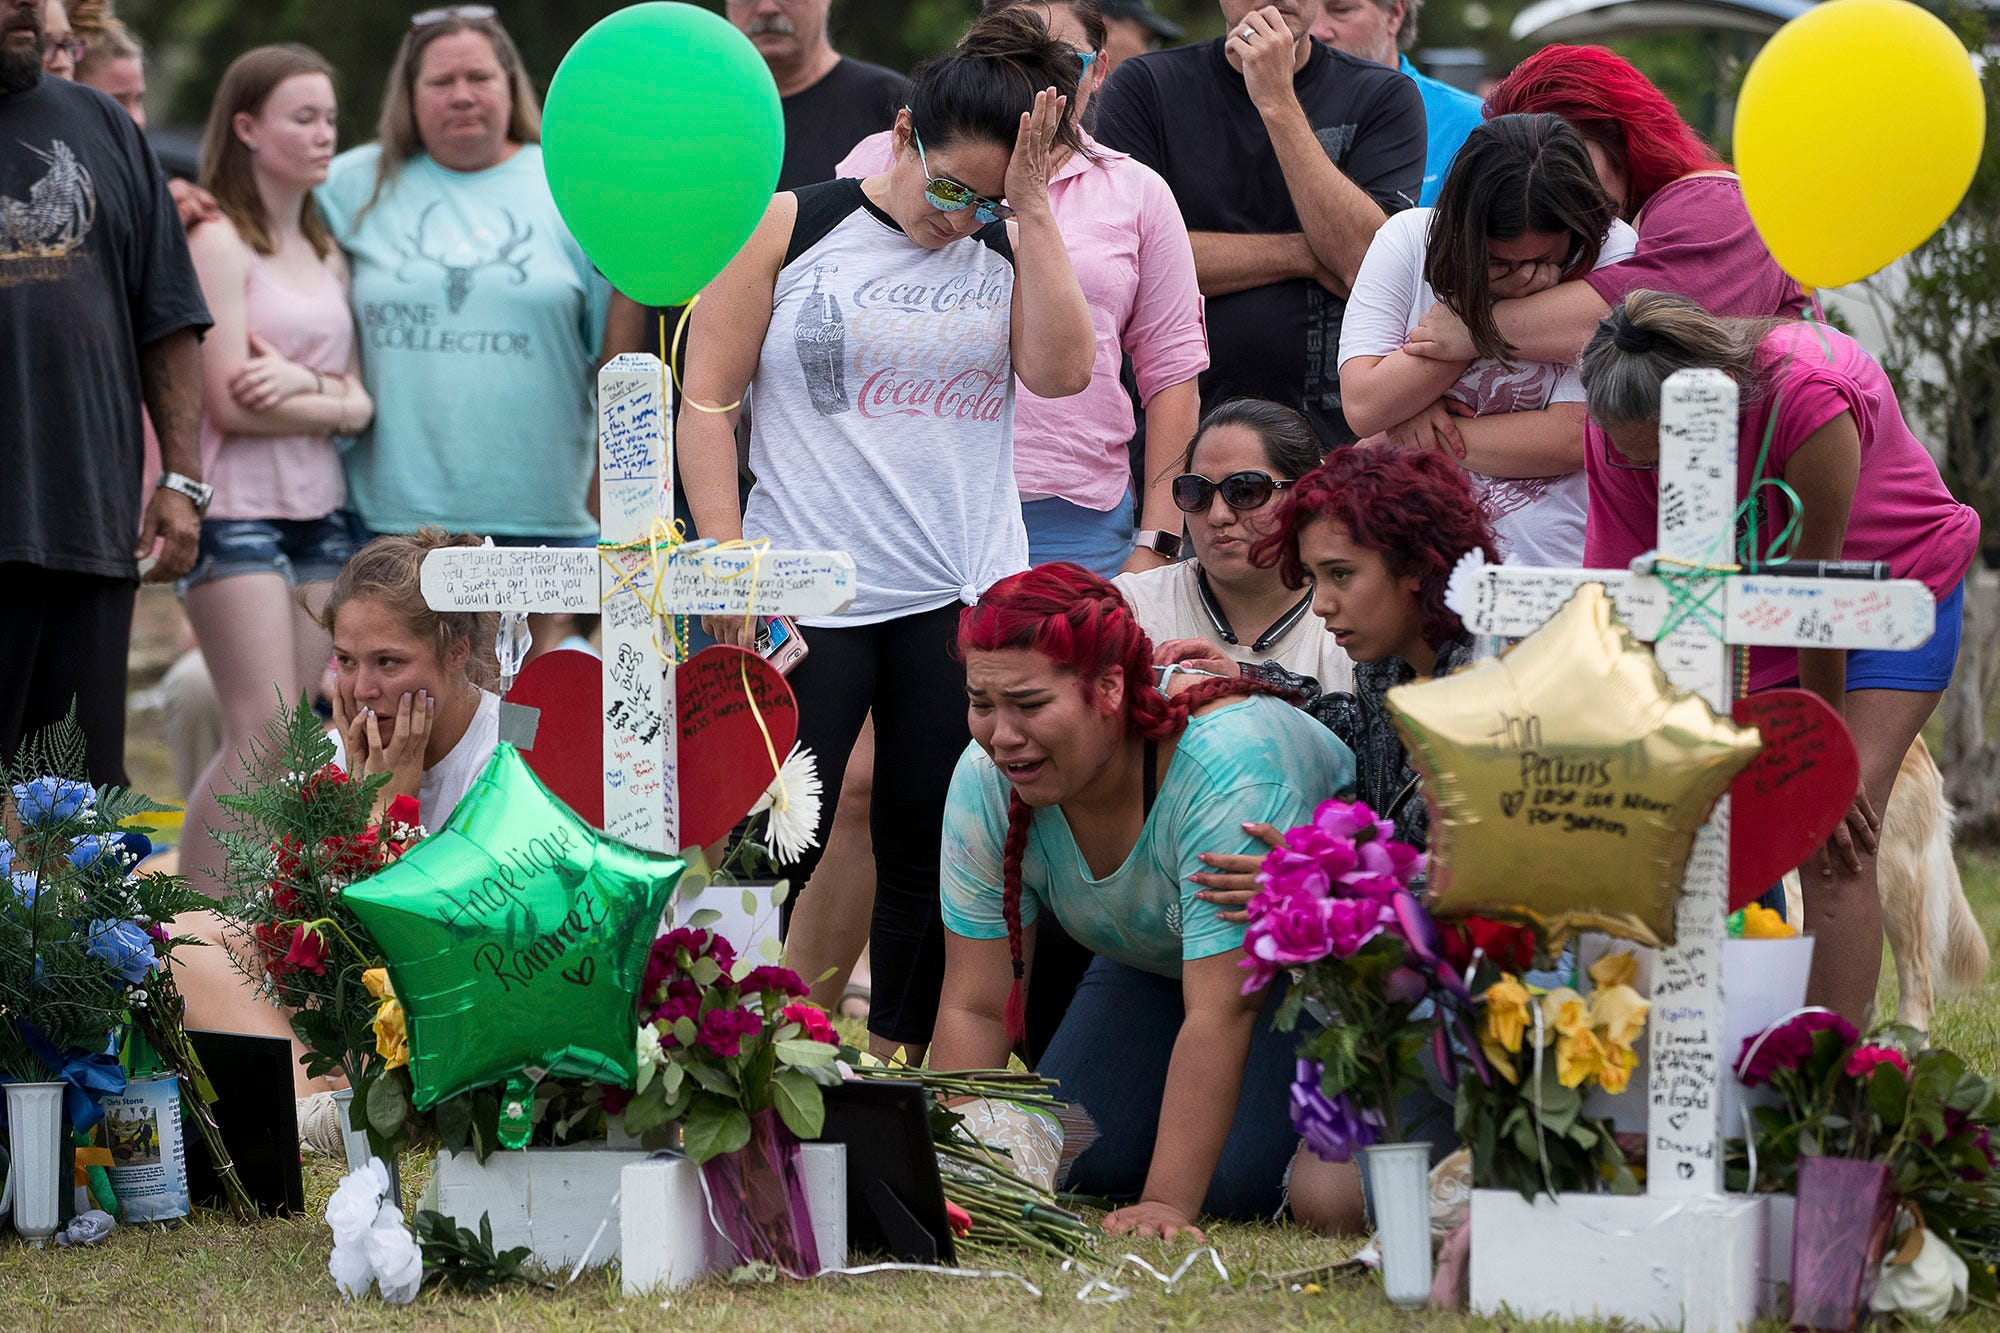 School shootings and mental health: Inside the minds of mass shooters